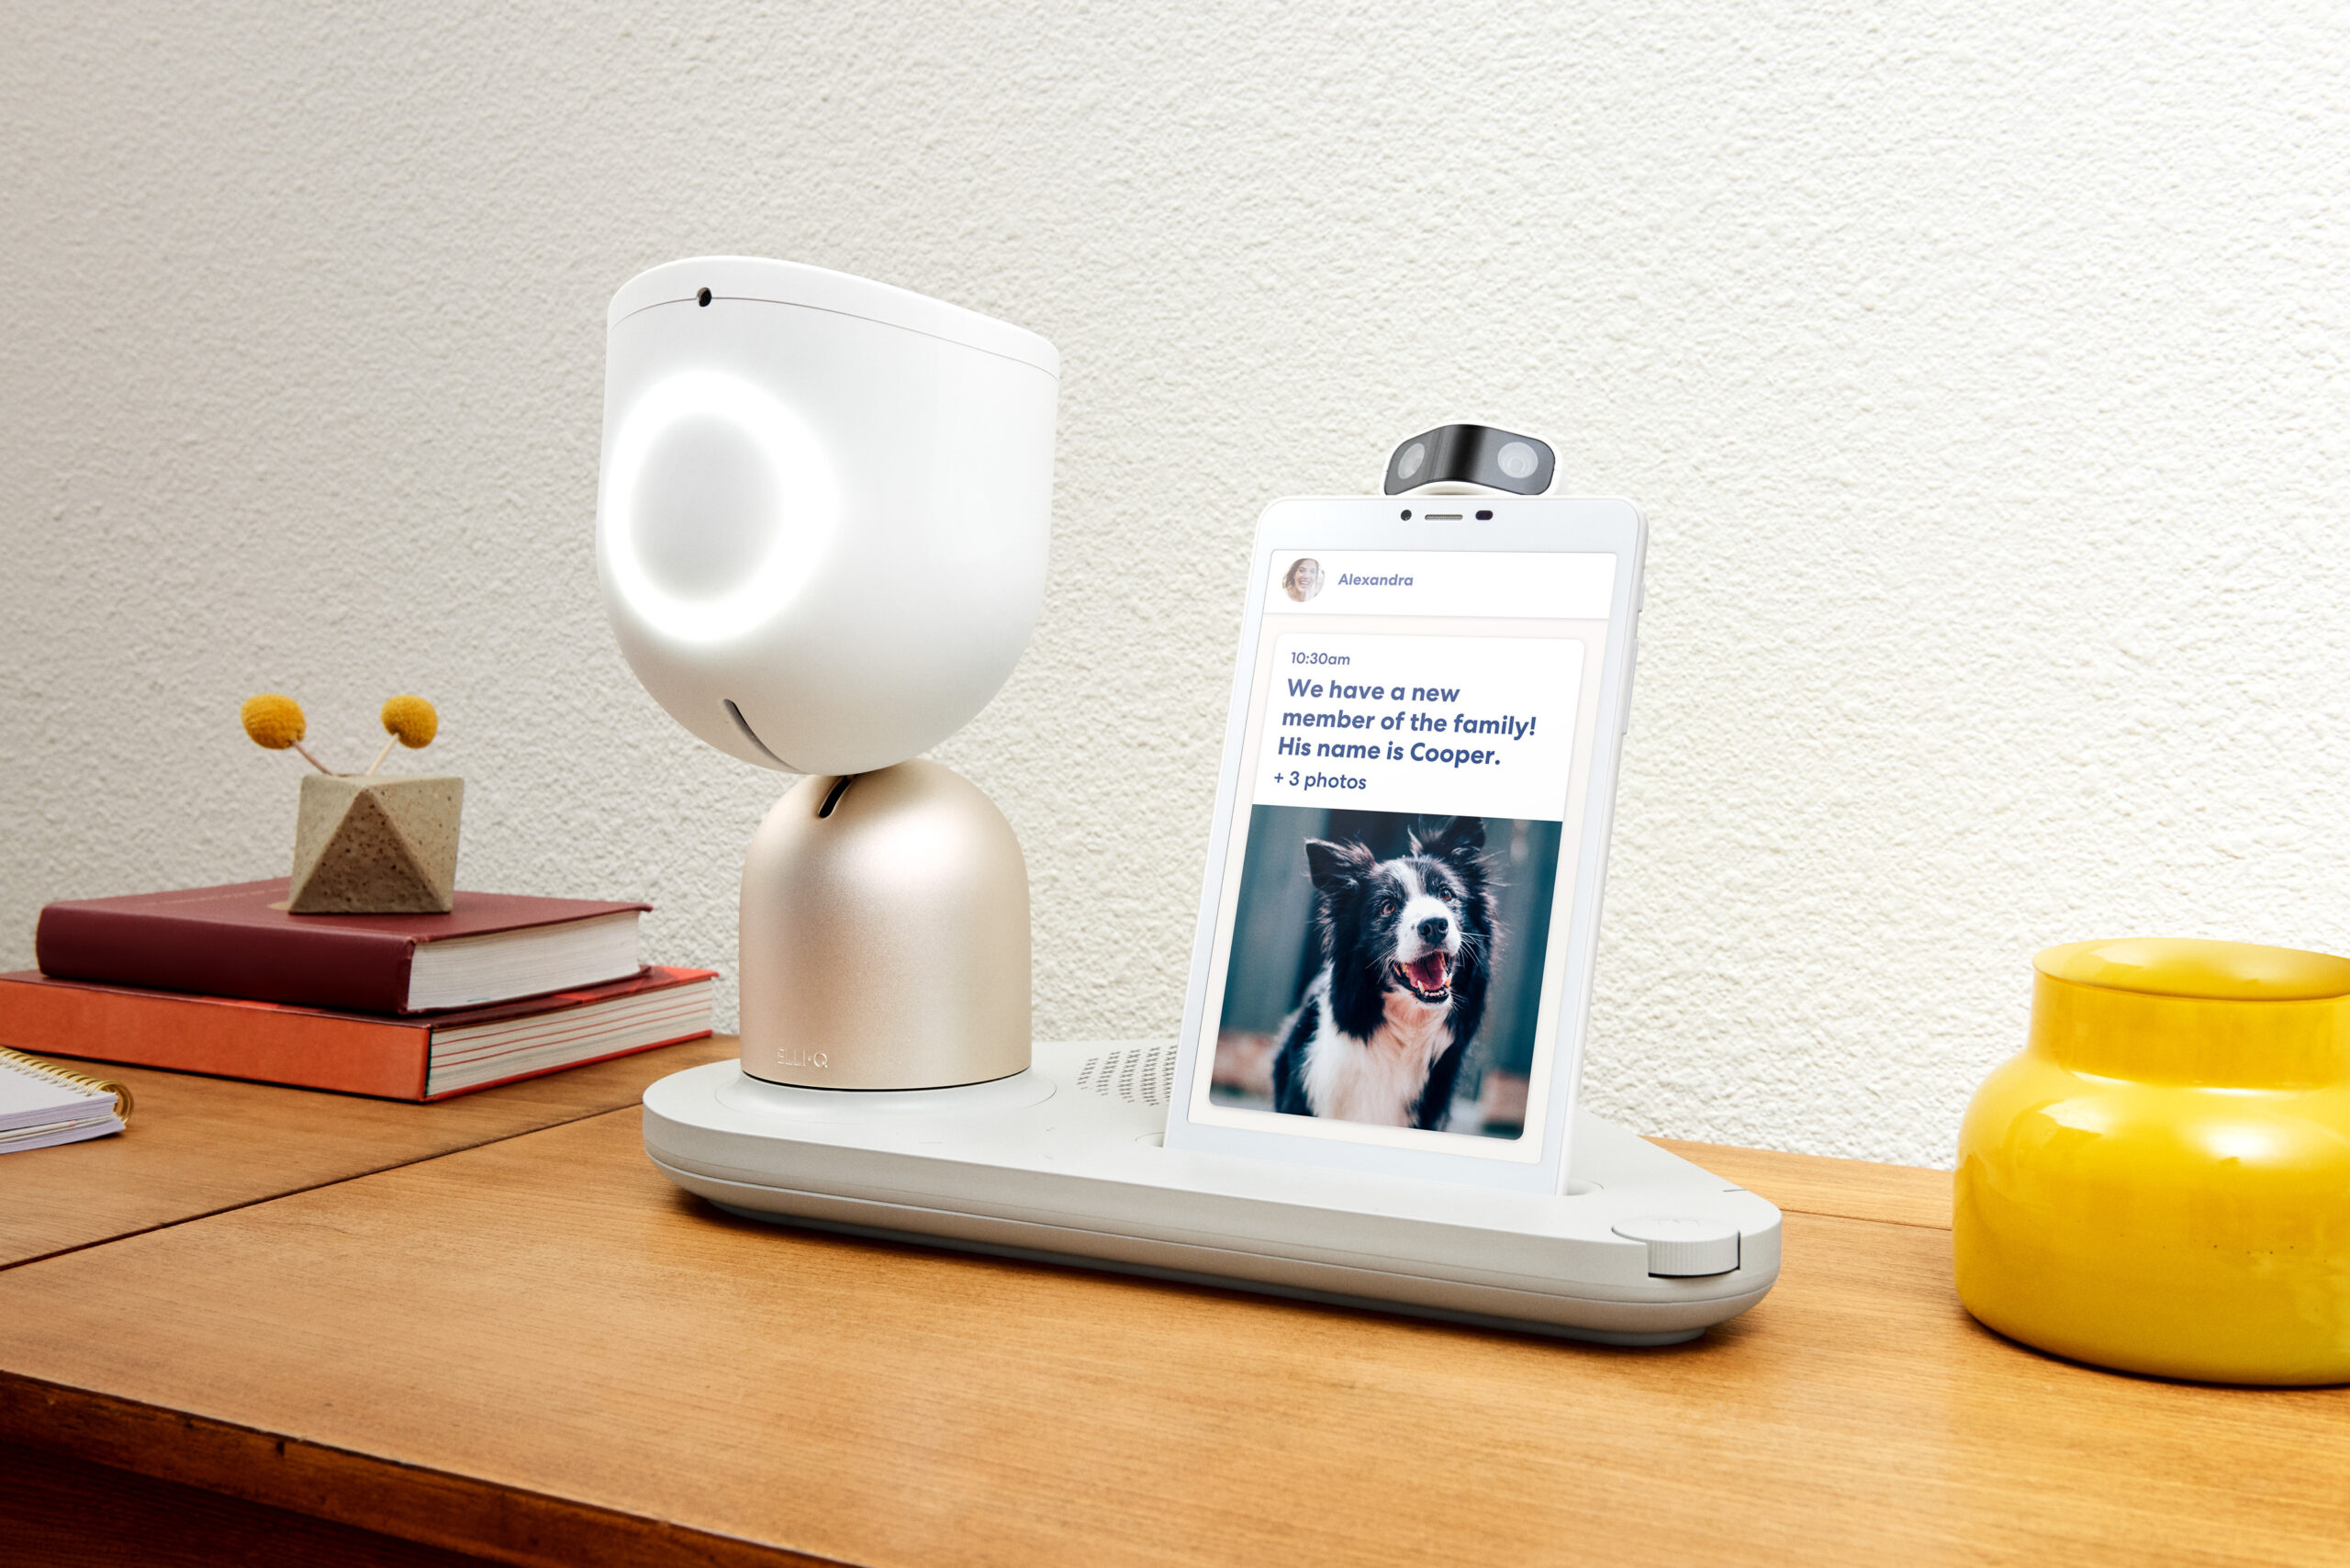 Bedside manner: These robots want to know how we are today